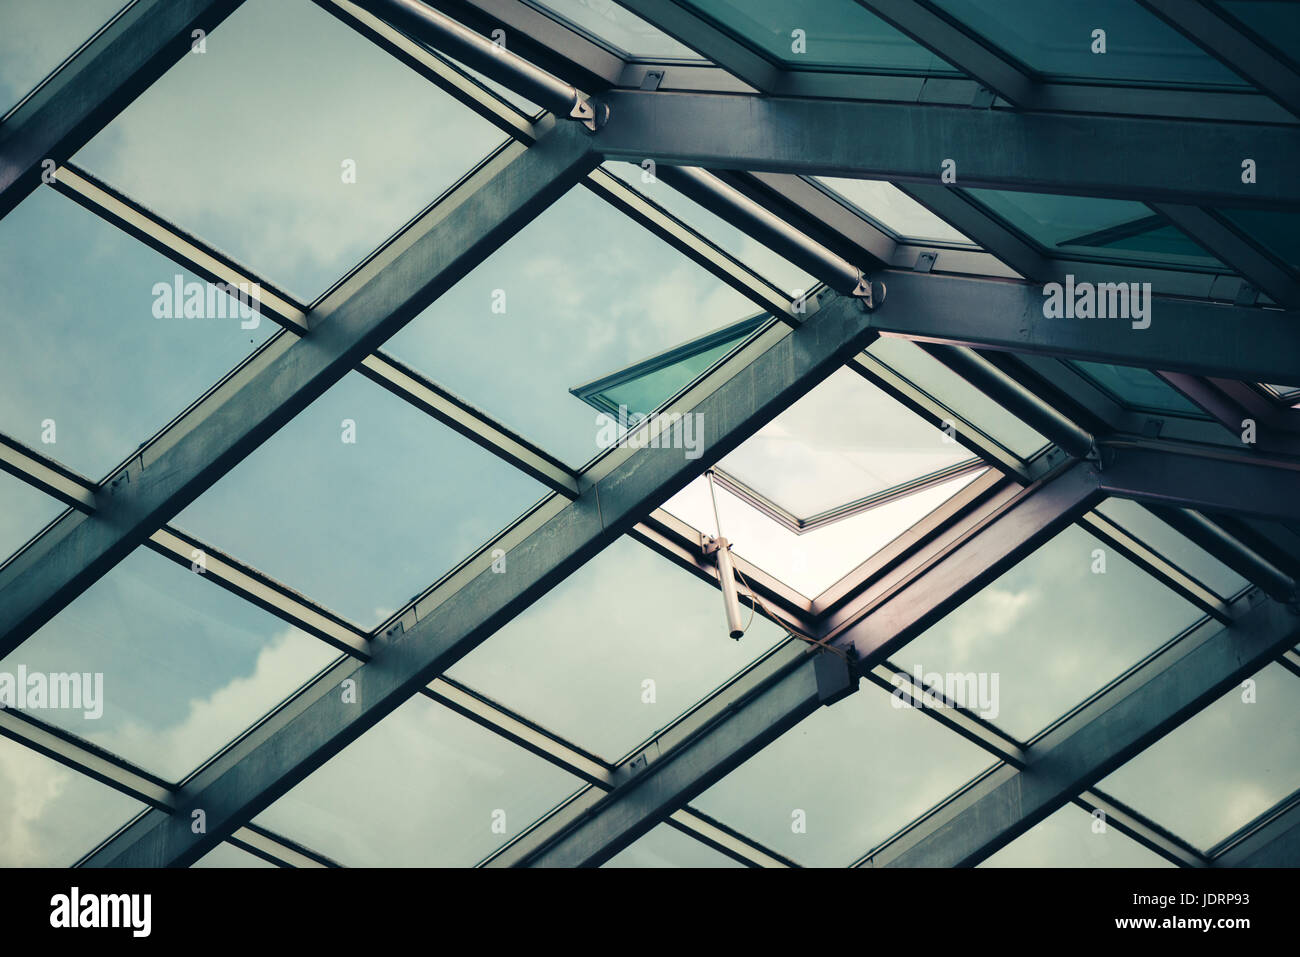 Glass skylight roof with open window, architectural feature detail - Stock Image